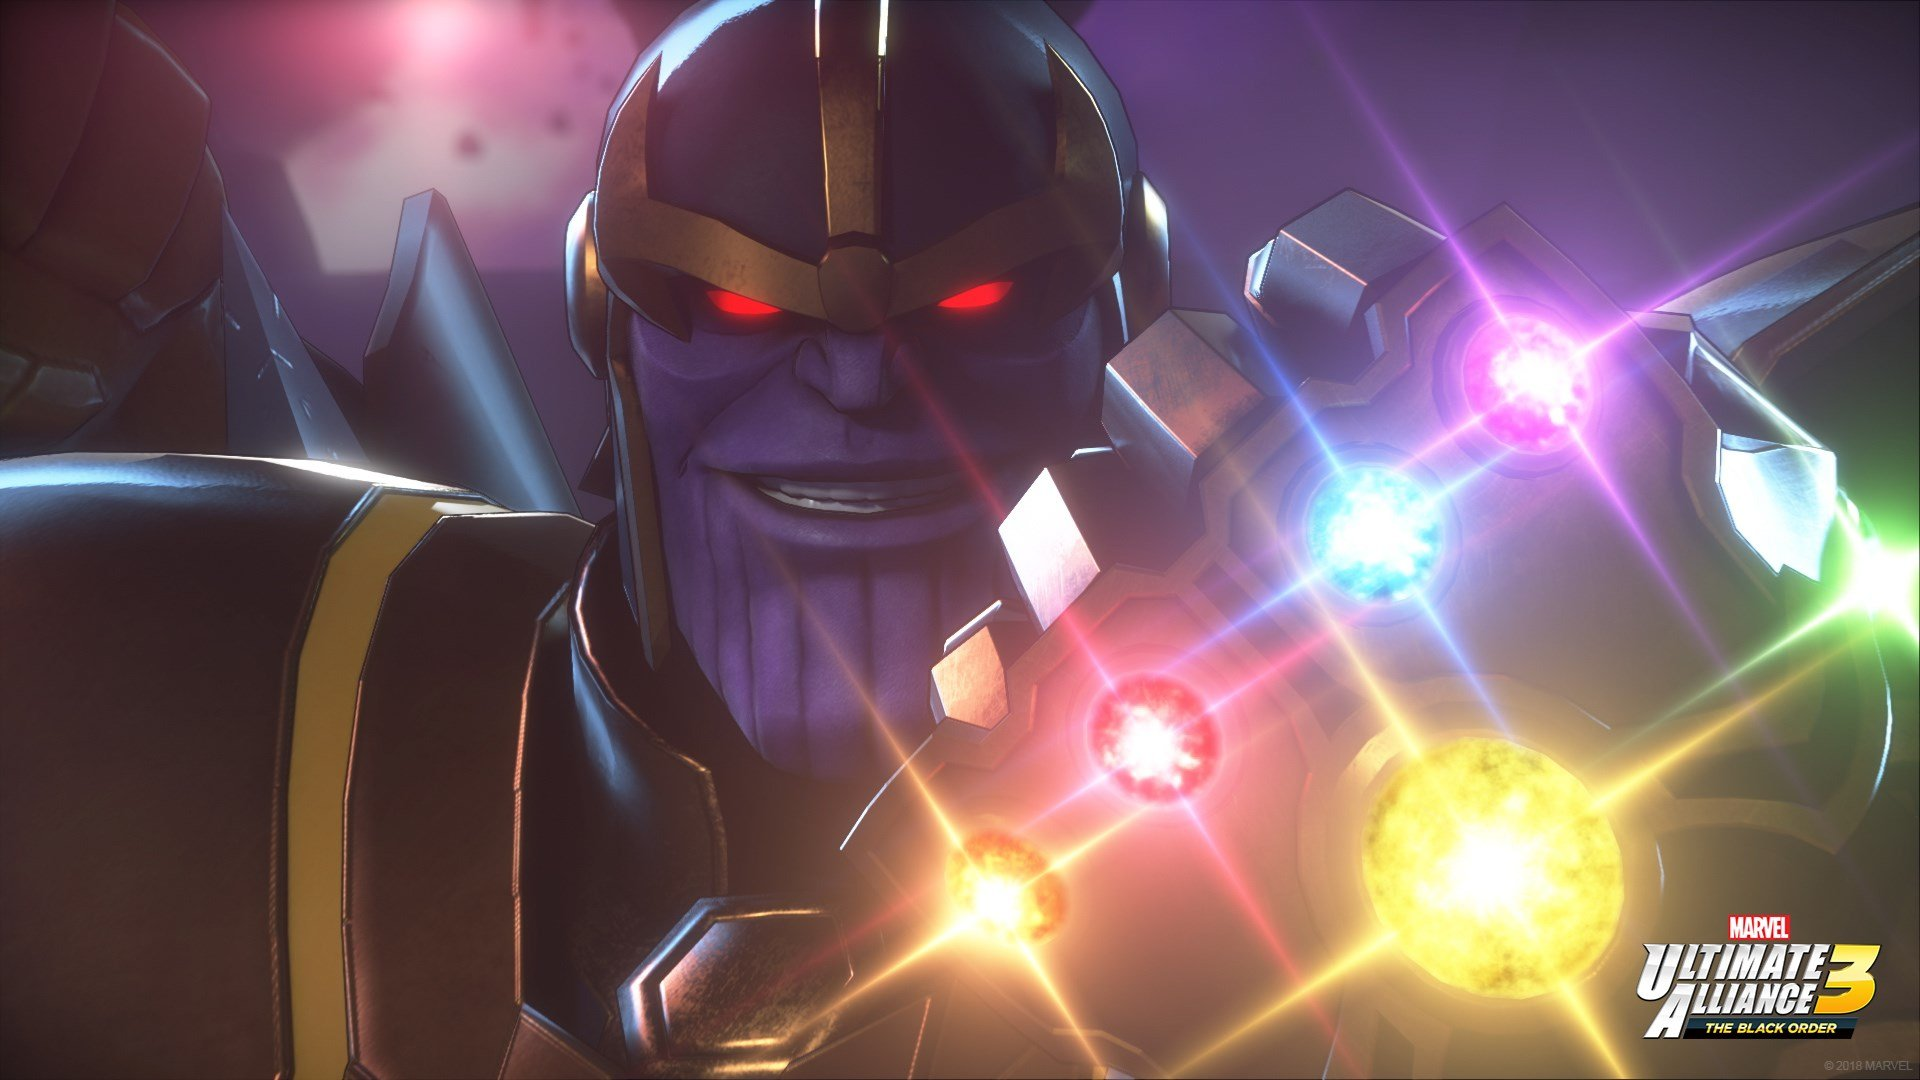 How to unlock Thanos in Marvel Ultimate Alliance 3